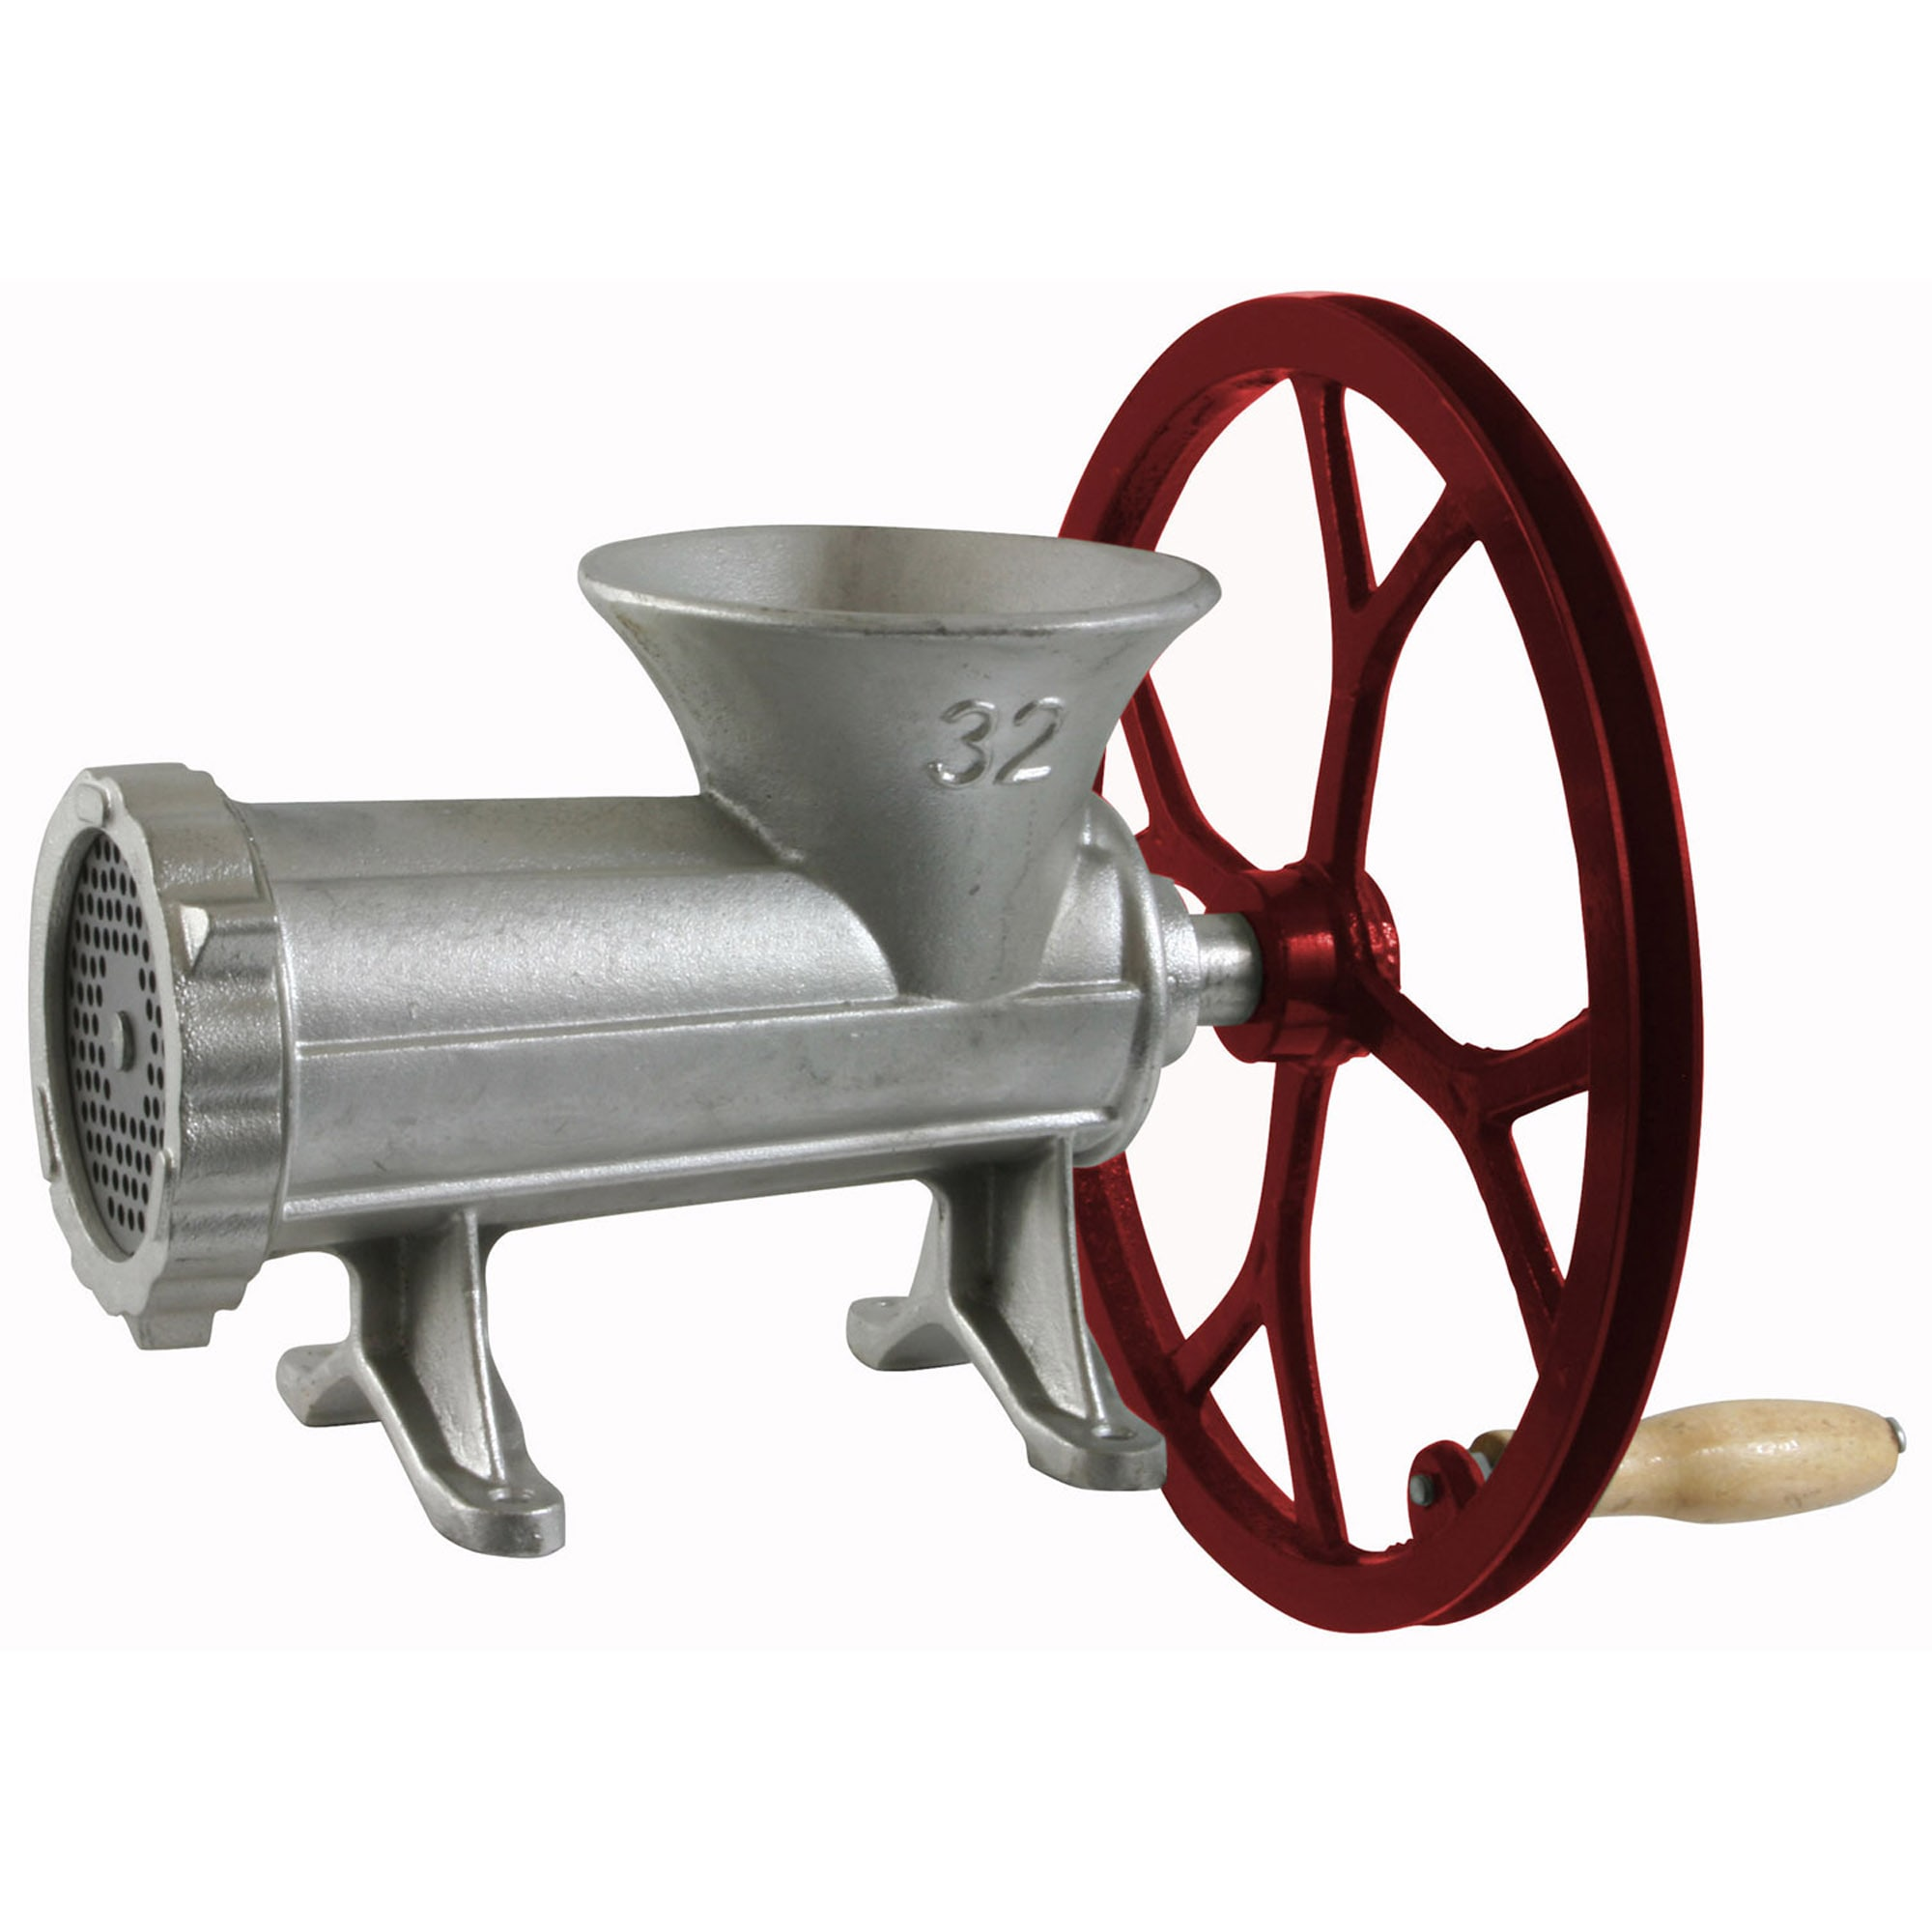 SPORTSMAN Meat Grinder with Pulley at Sears.com